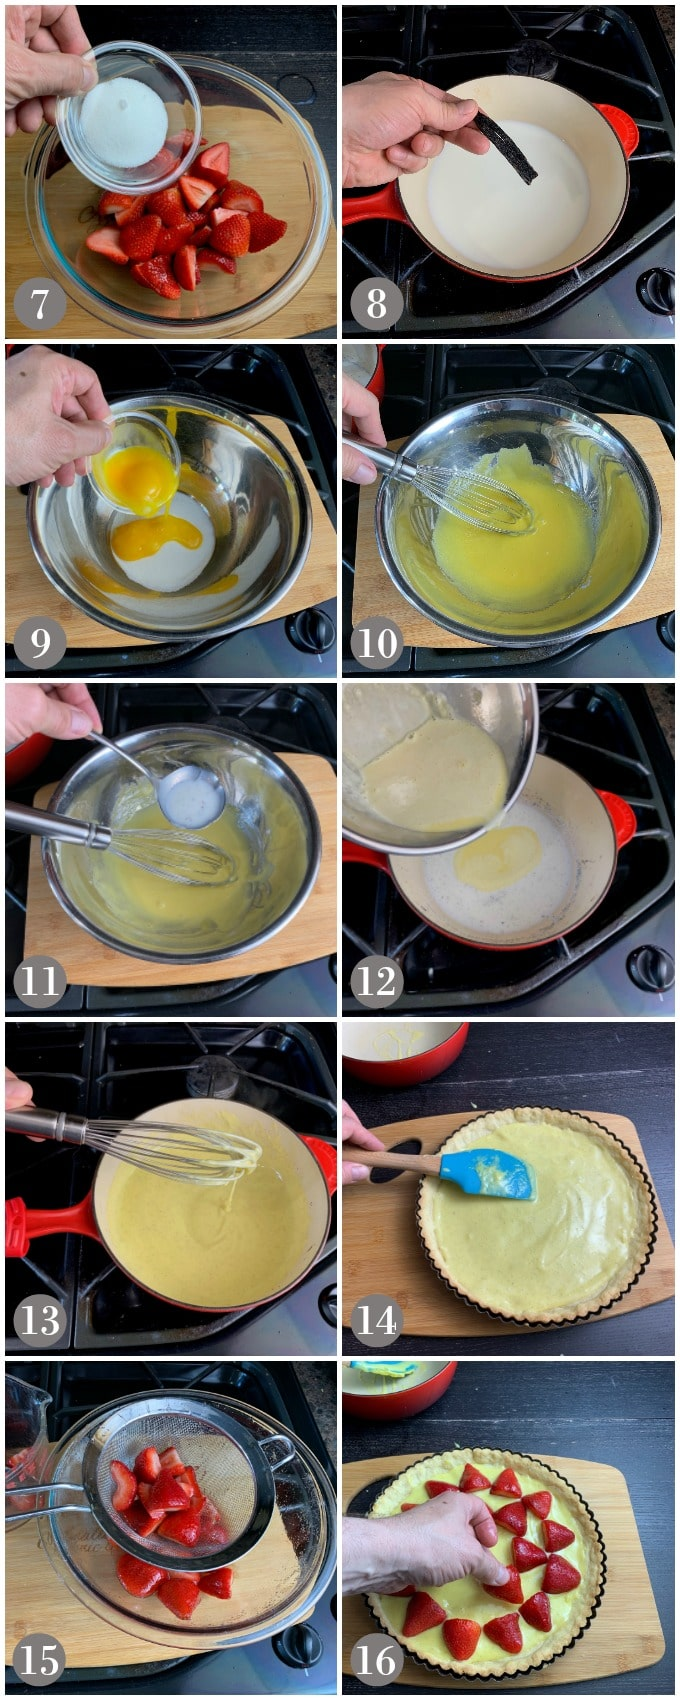 A collage of photos showing steps to make vanilla custard and filling it into a tart shell with strawberries on top.